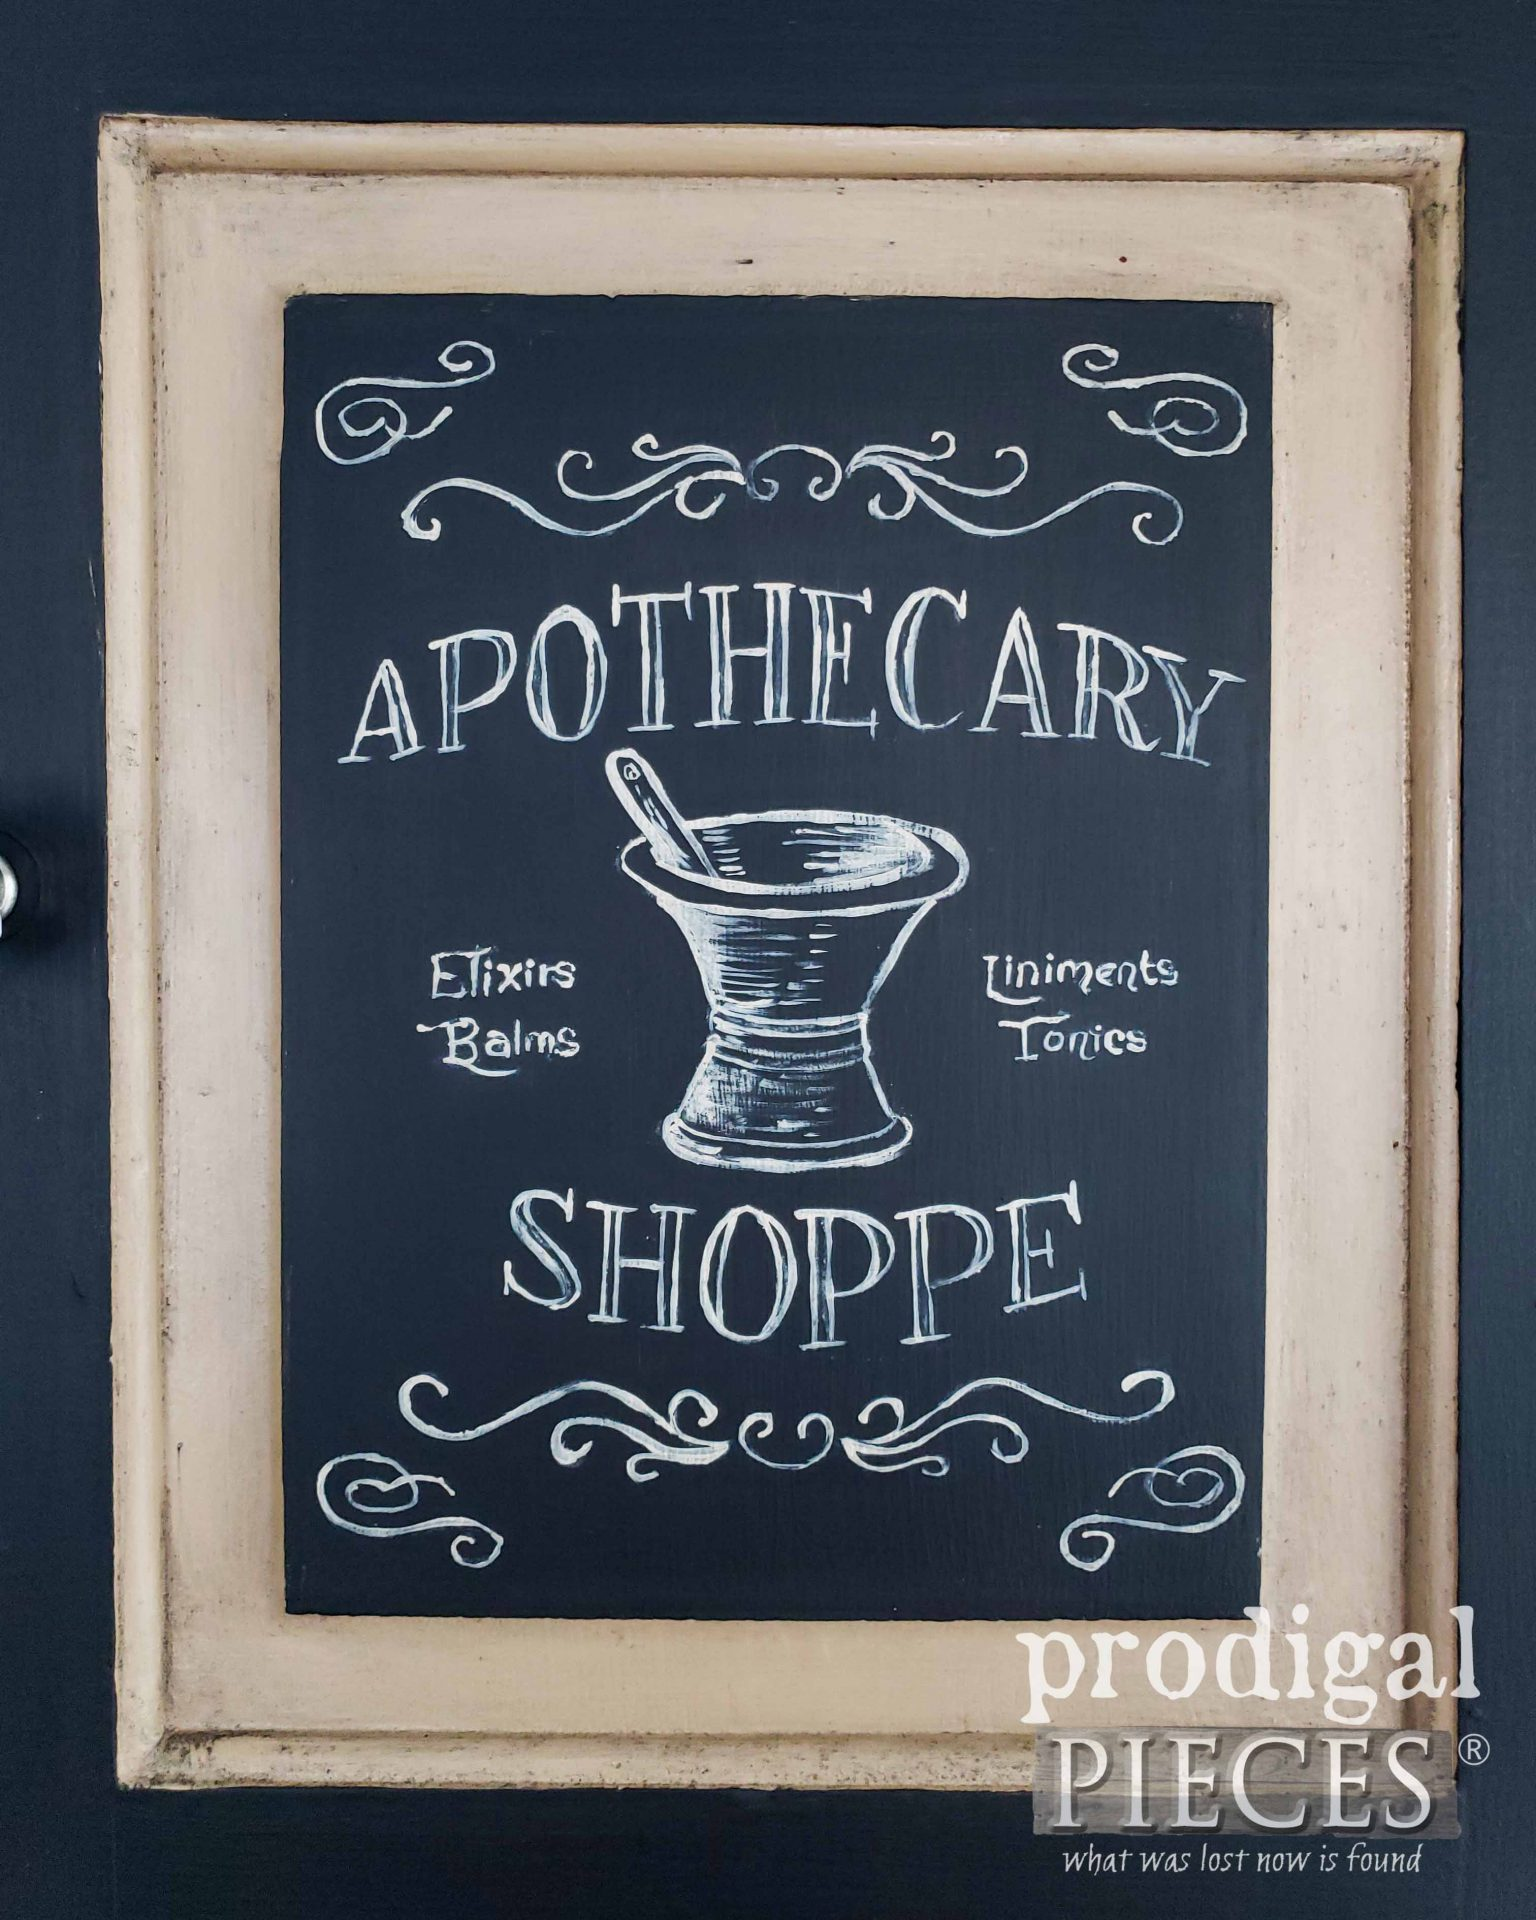 Hand-Painted Apothecary Art by Larissa of Prodigal Pieces | prodigalpieces.com #prodigalpieces #vintage #handmade #farmhouse #home #homedecor